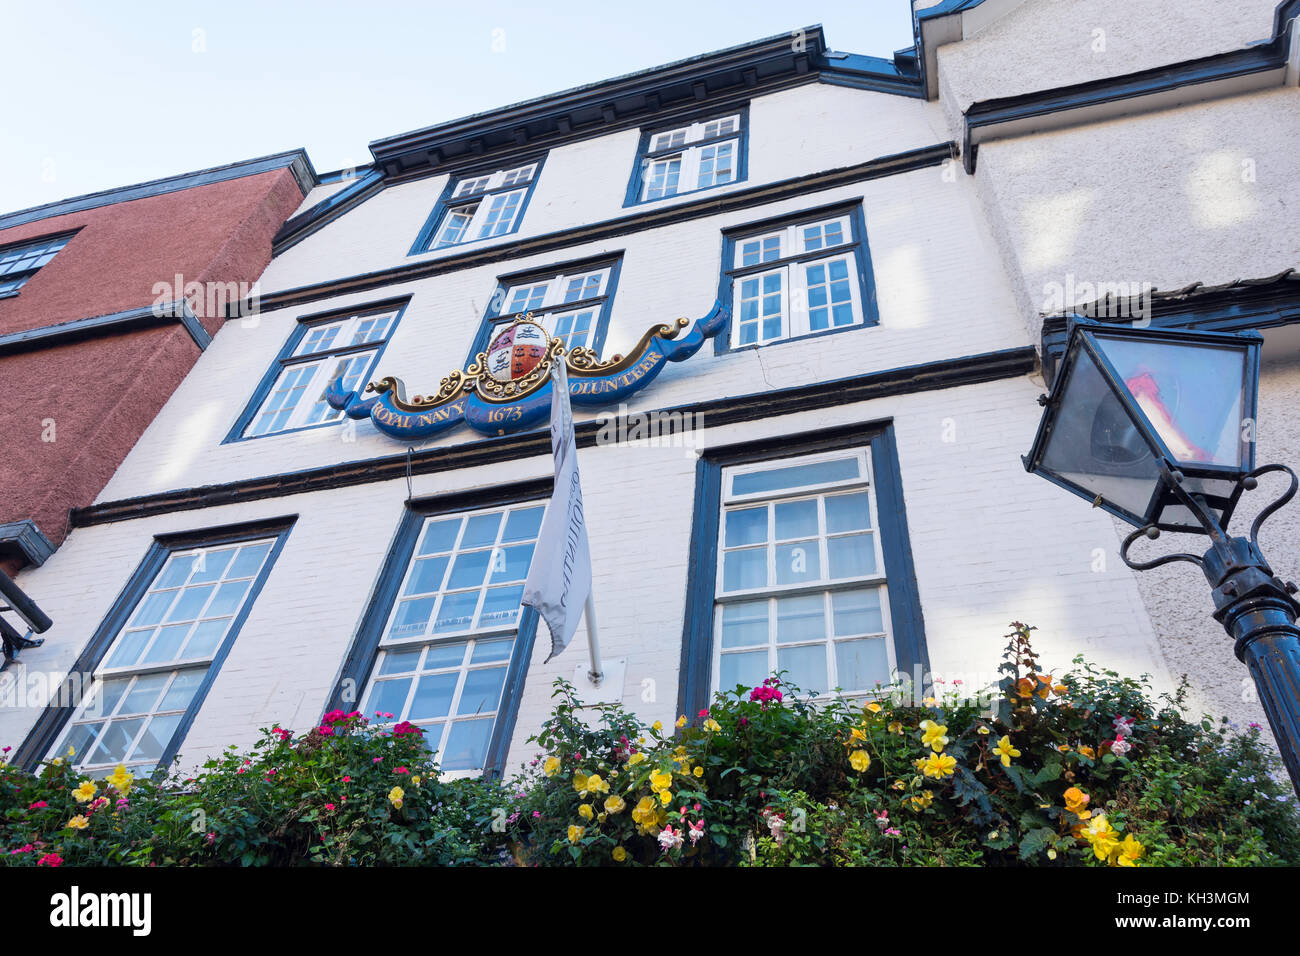 17th century The Famous Royal Navy Volunteer Pub, King Street, Old City, Bristol, England, United Kingdom - Stock Image